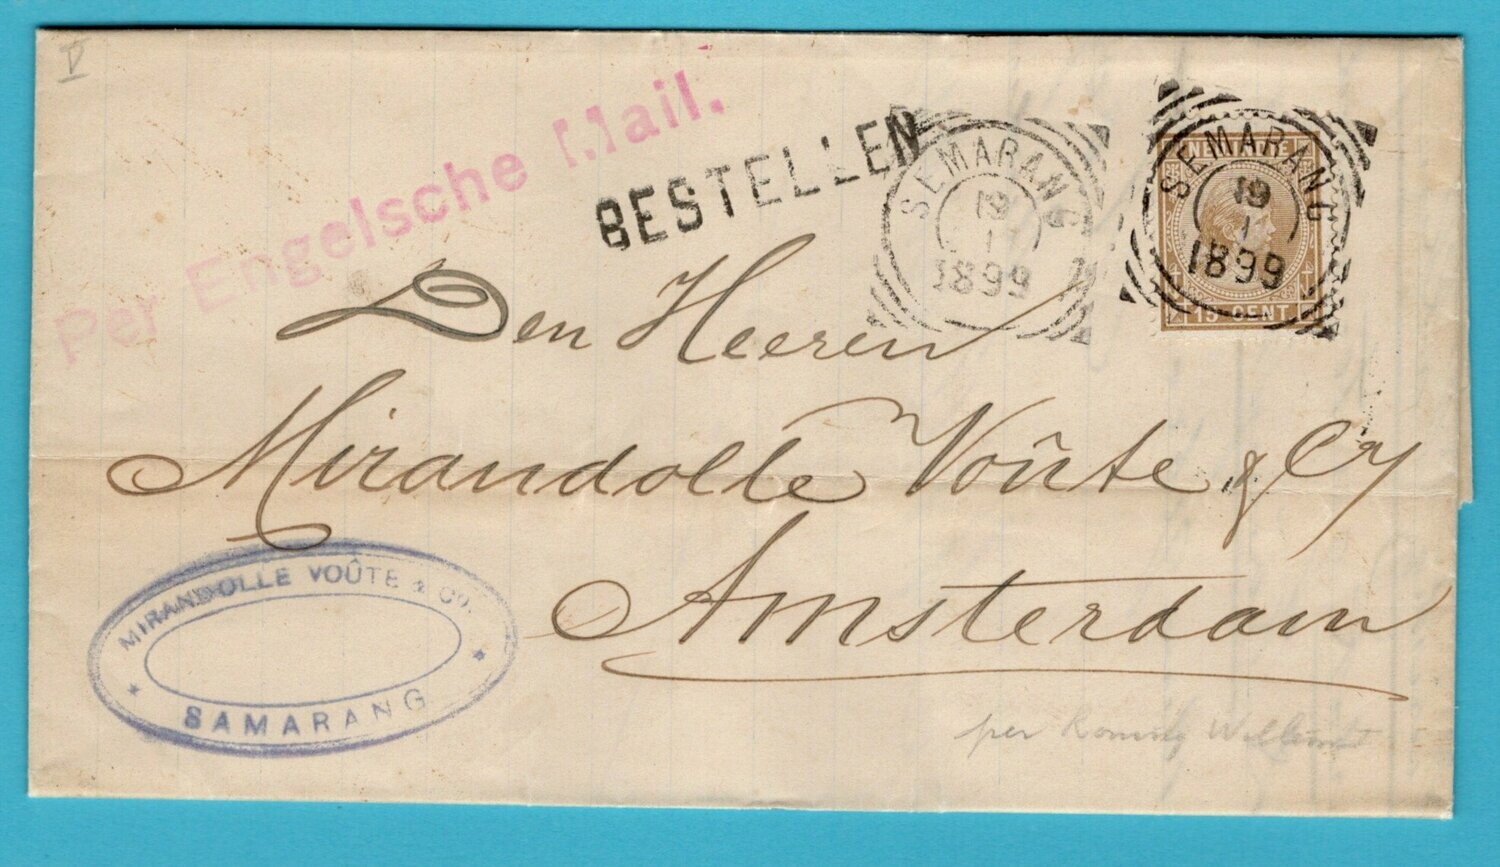 NETHERLANDS EAST INDIES cover 1899 Semarang to Amsterdam